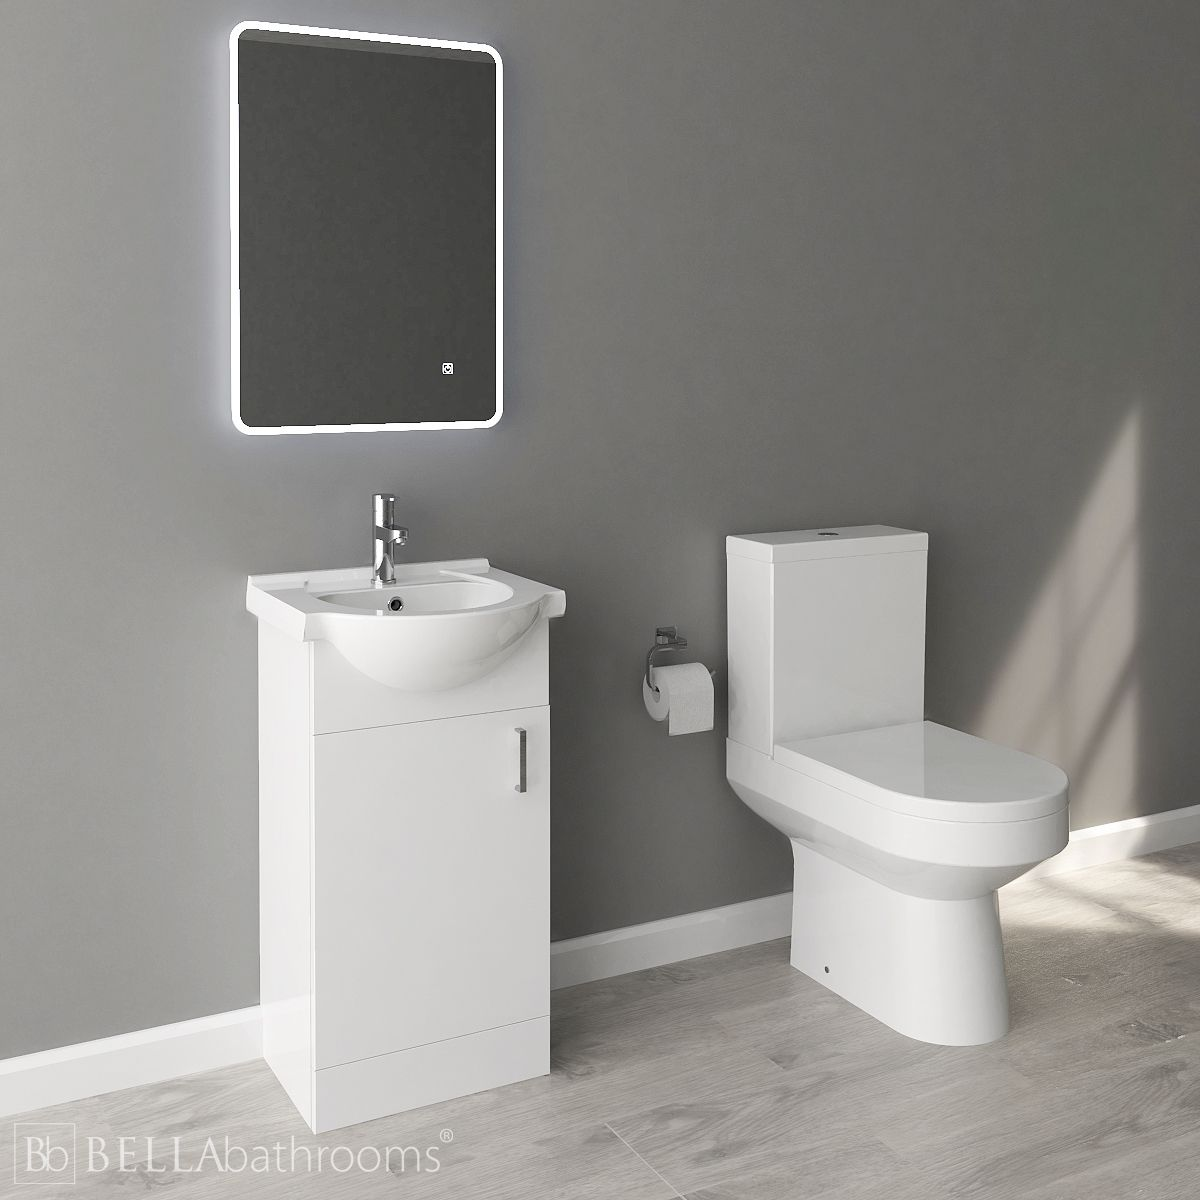 Nuie High Gloss White Vanity Unit and Toilet Set 450mm